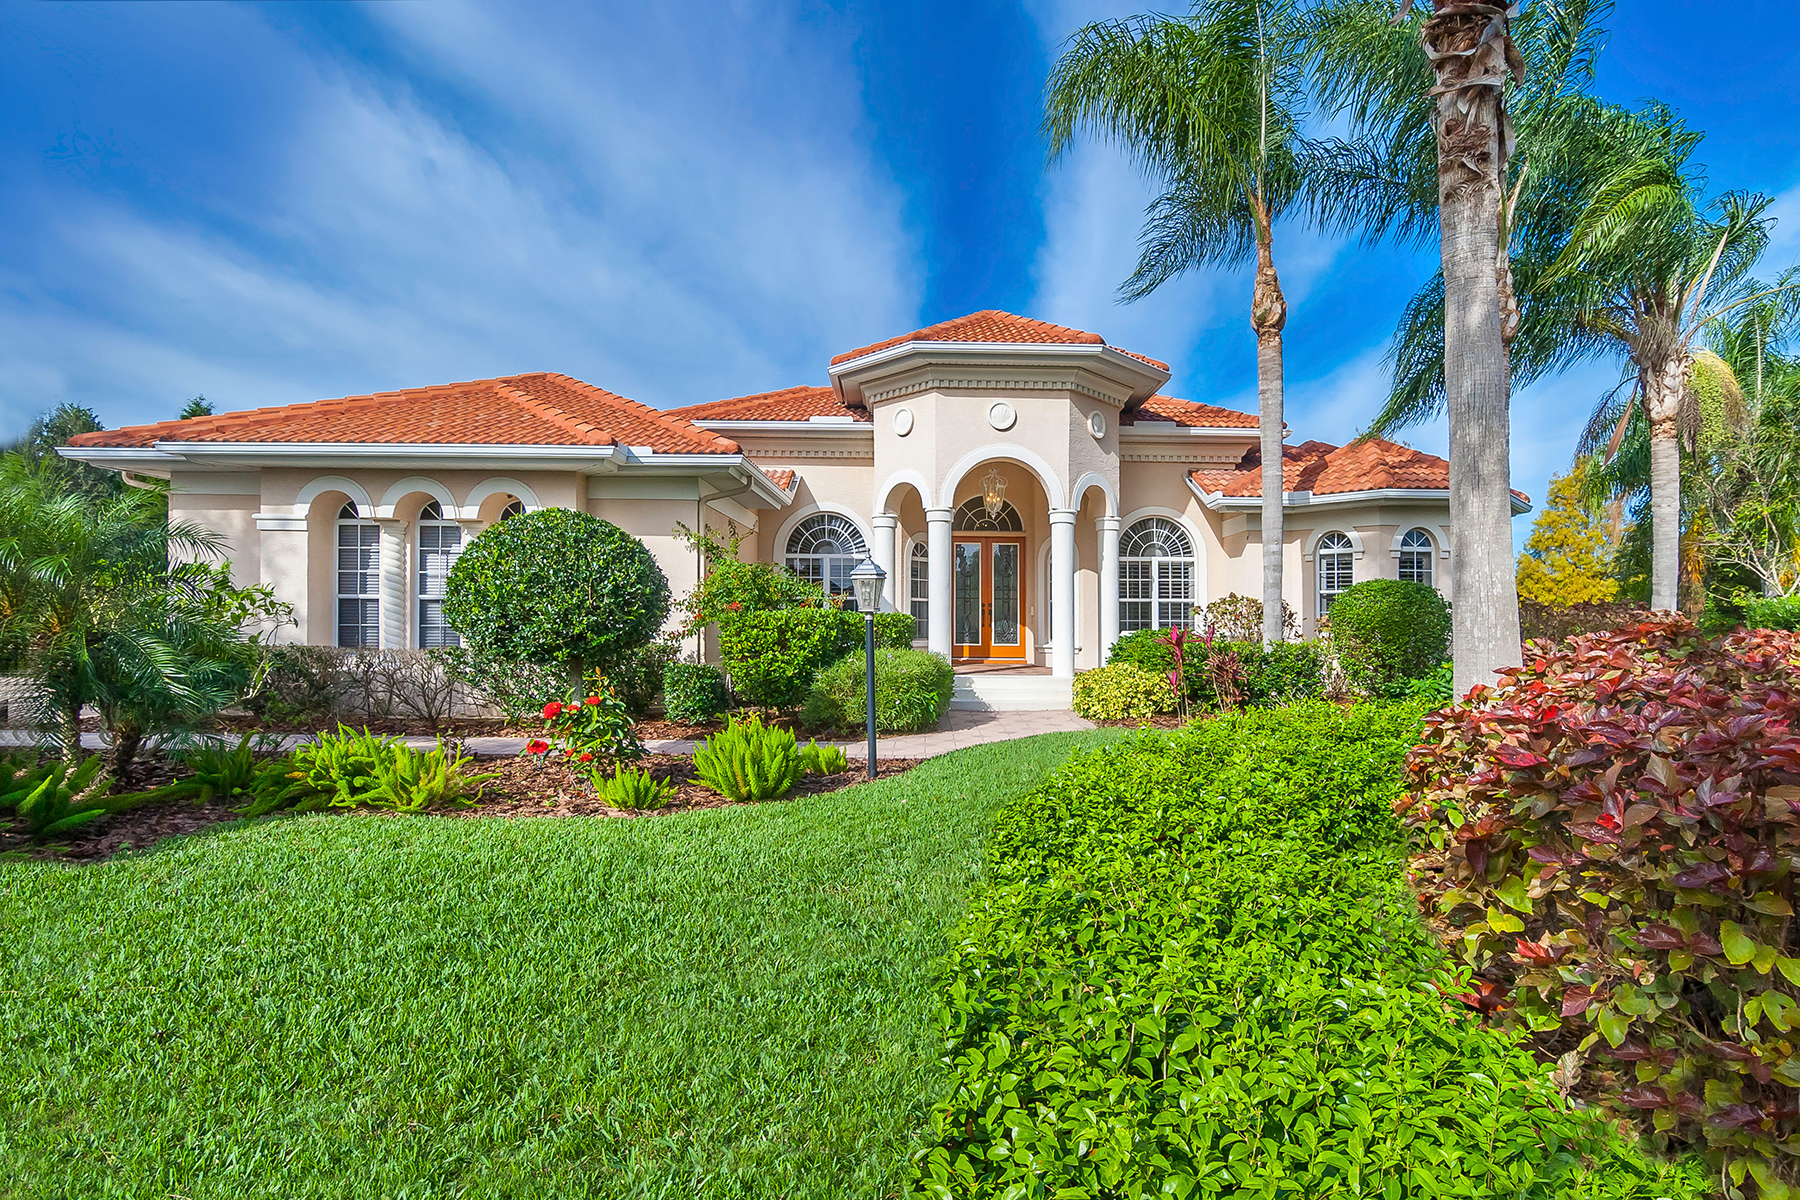 Single Family Home for Sale at LAKEWOOD RANCH COUNTRY CLUB 7804 Rosehall Cv Lakewood Ranch, Florida, 34202 United States